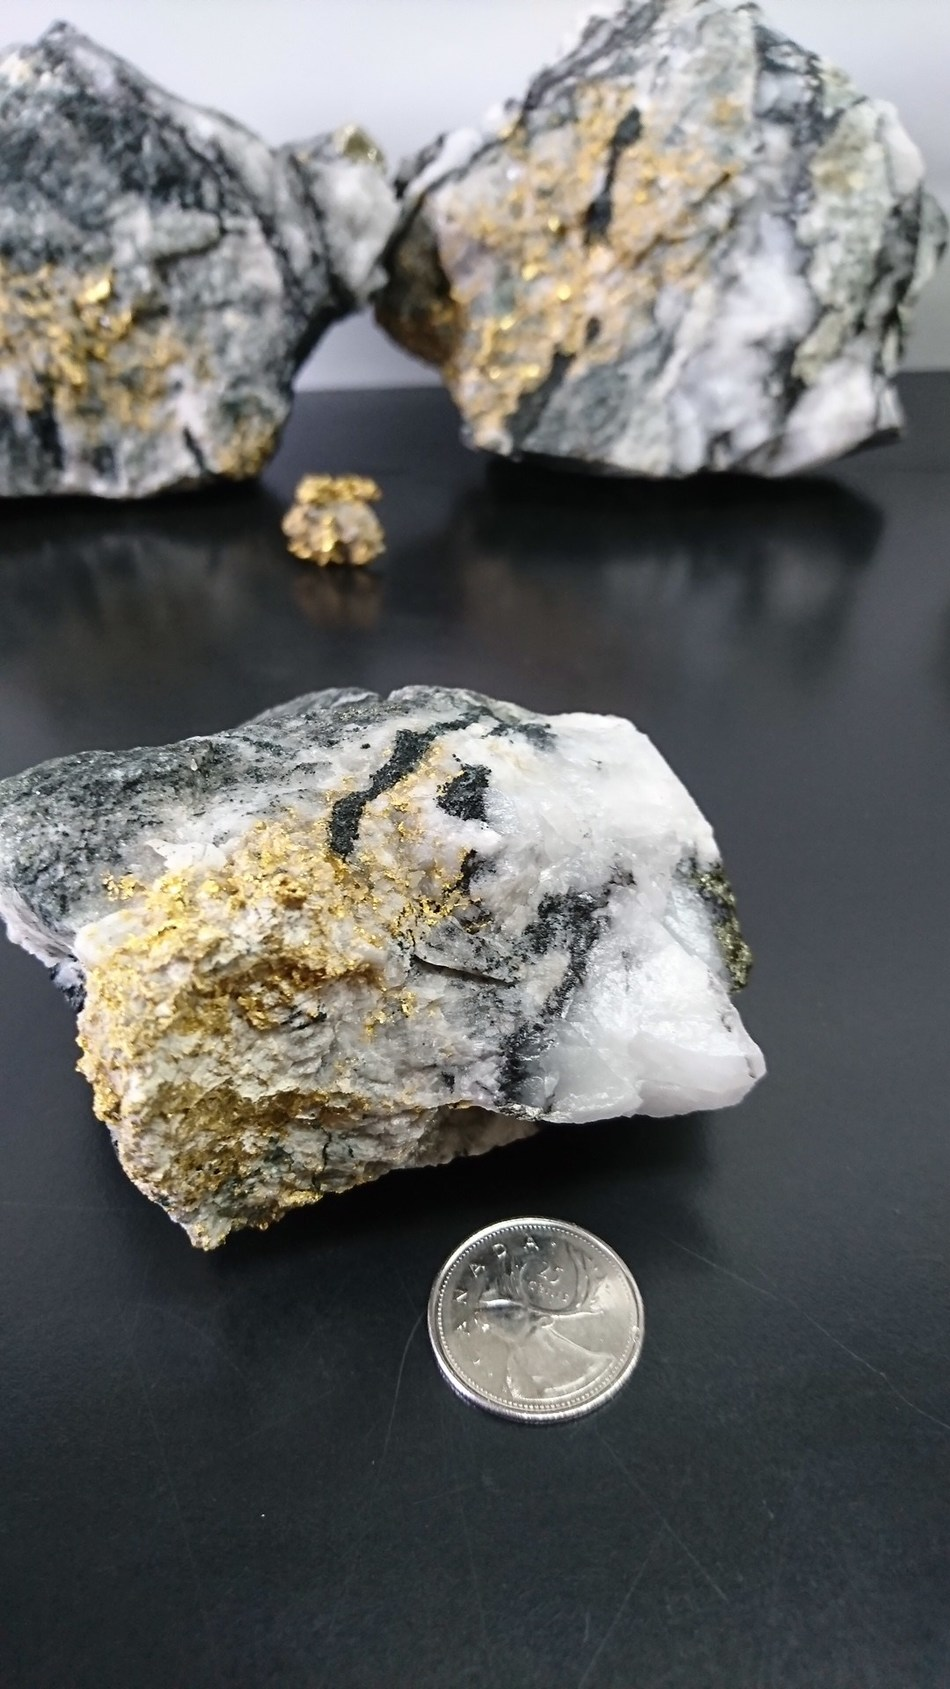 MONARQUES GOLD INTERSECTS 61.48 G/T AU OVER 3.9 METRES (12.8 FEET) AT THE BEAUFOR MINE (CNW Group/Monarques Gold Corporation)